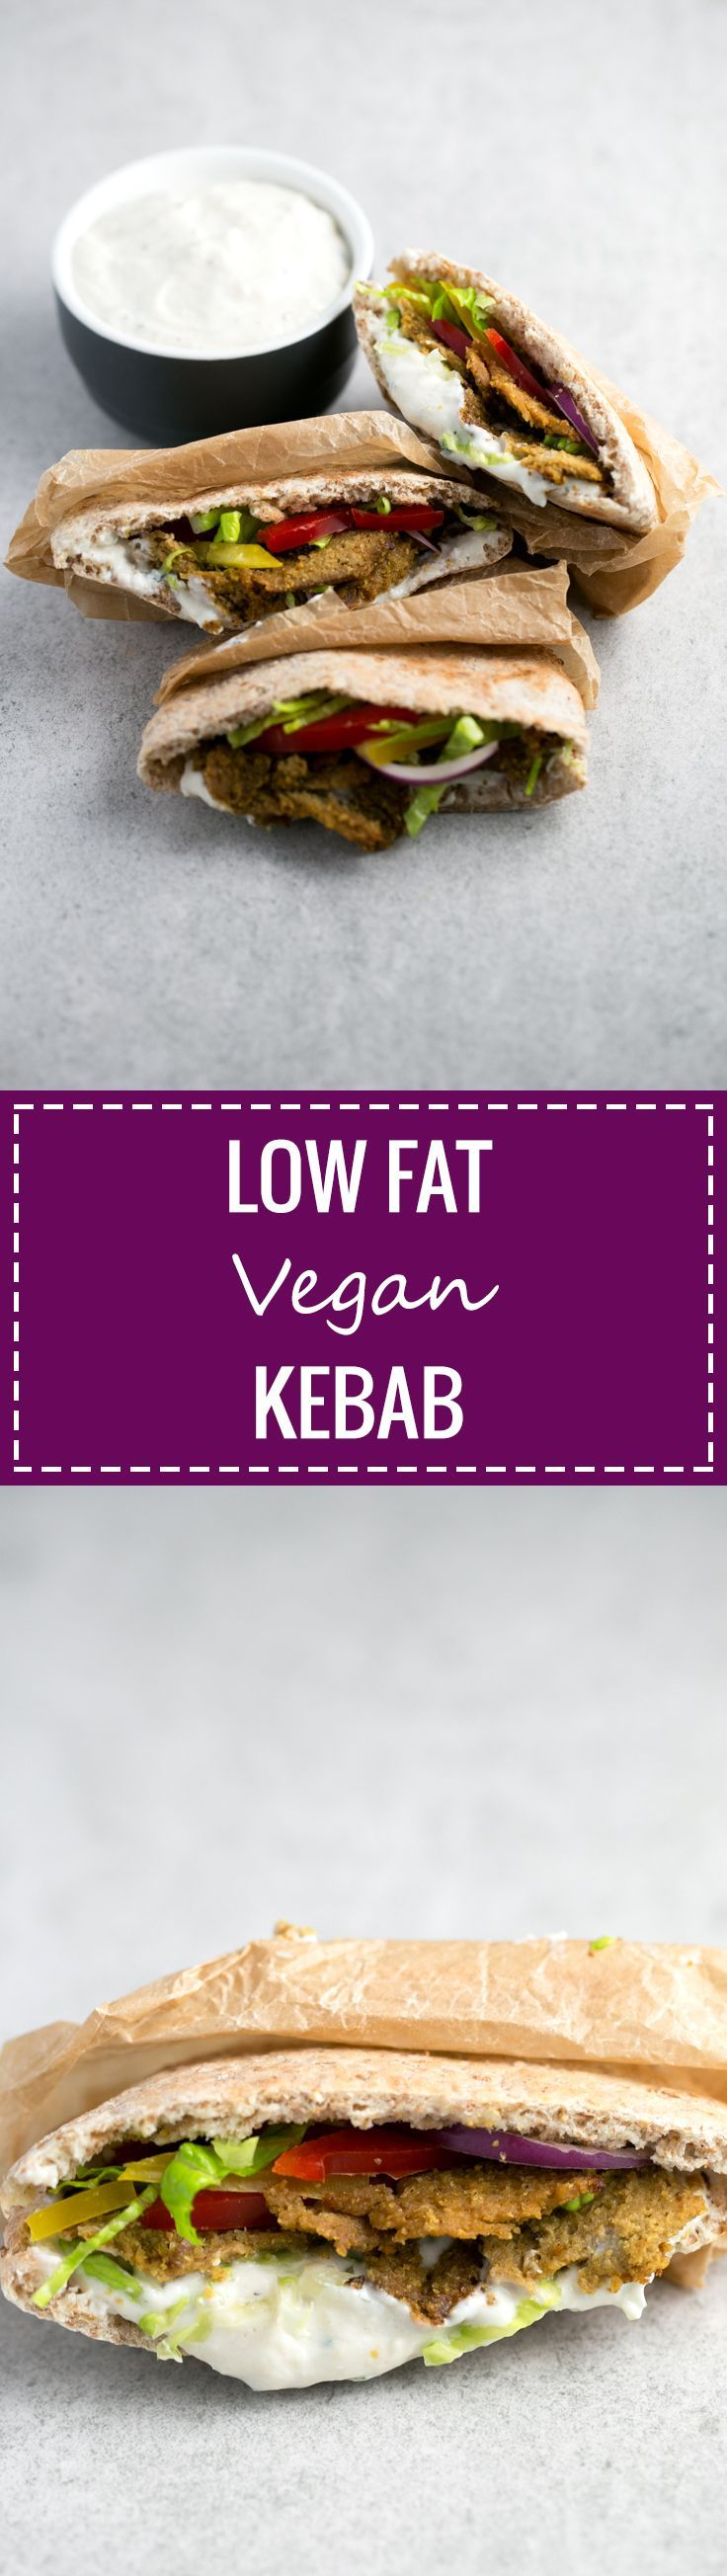 This low fat vegan kebab is perfect for people who miss the taste of meat, are trying to eat less meat or going vegetarian or vegan. It's an EPIC recipe!